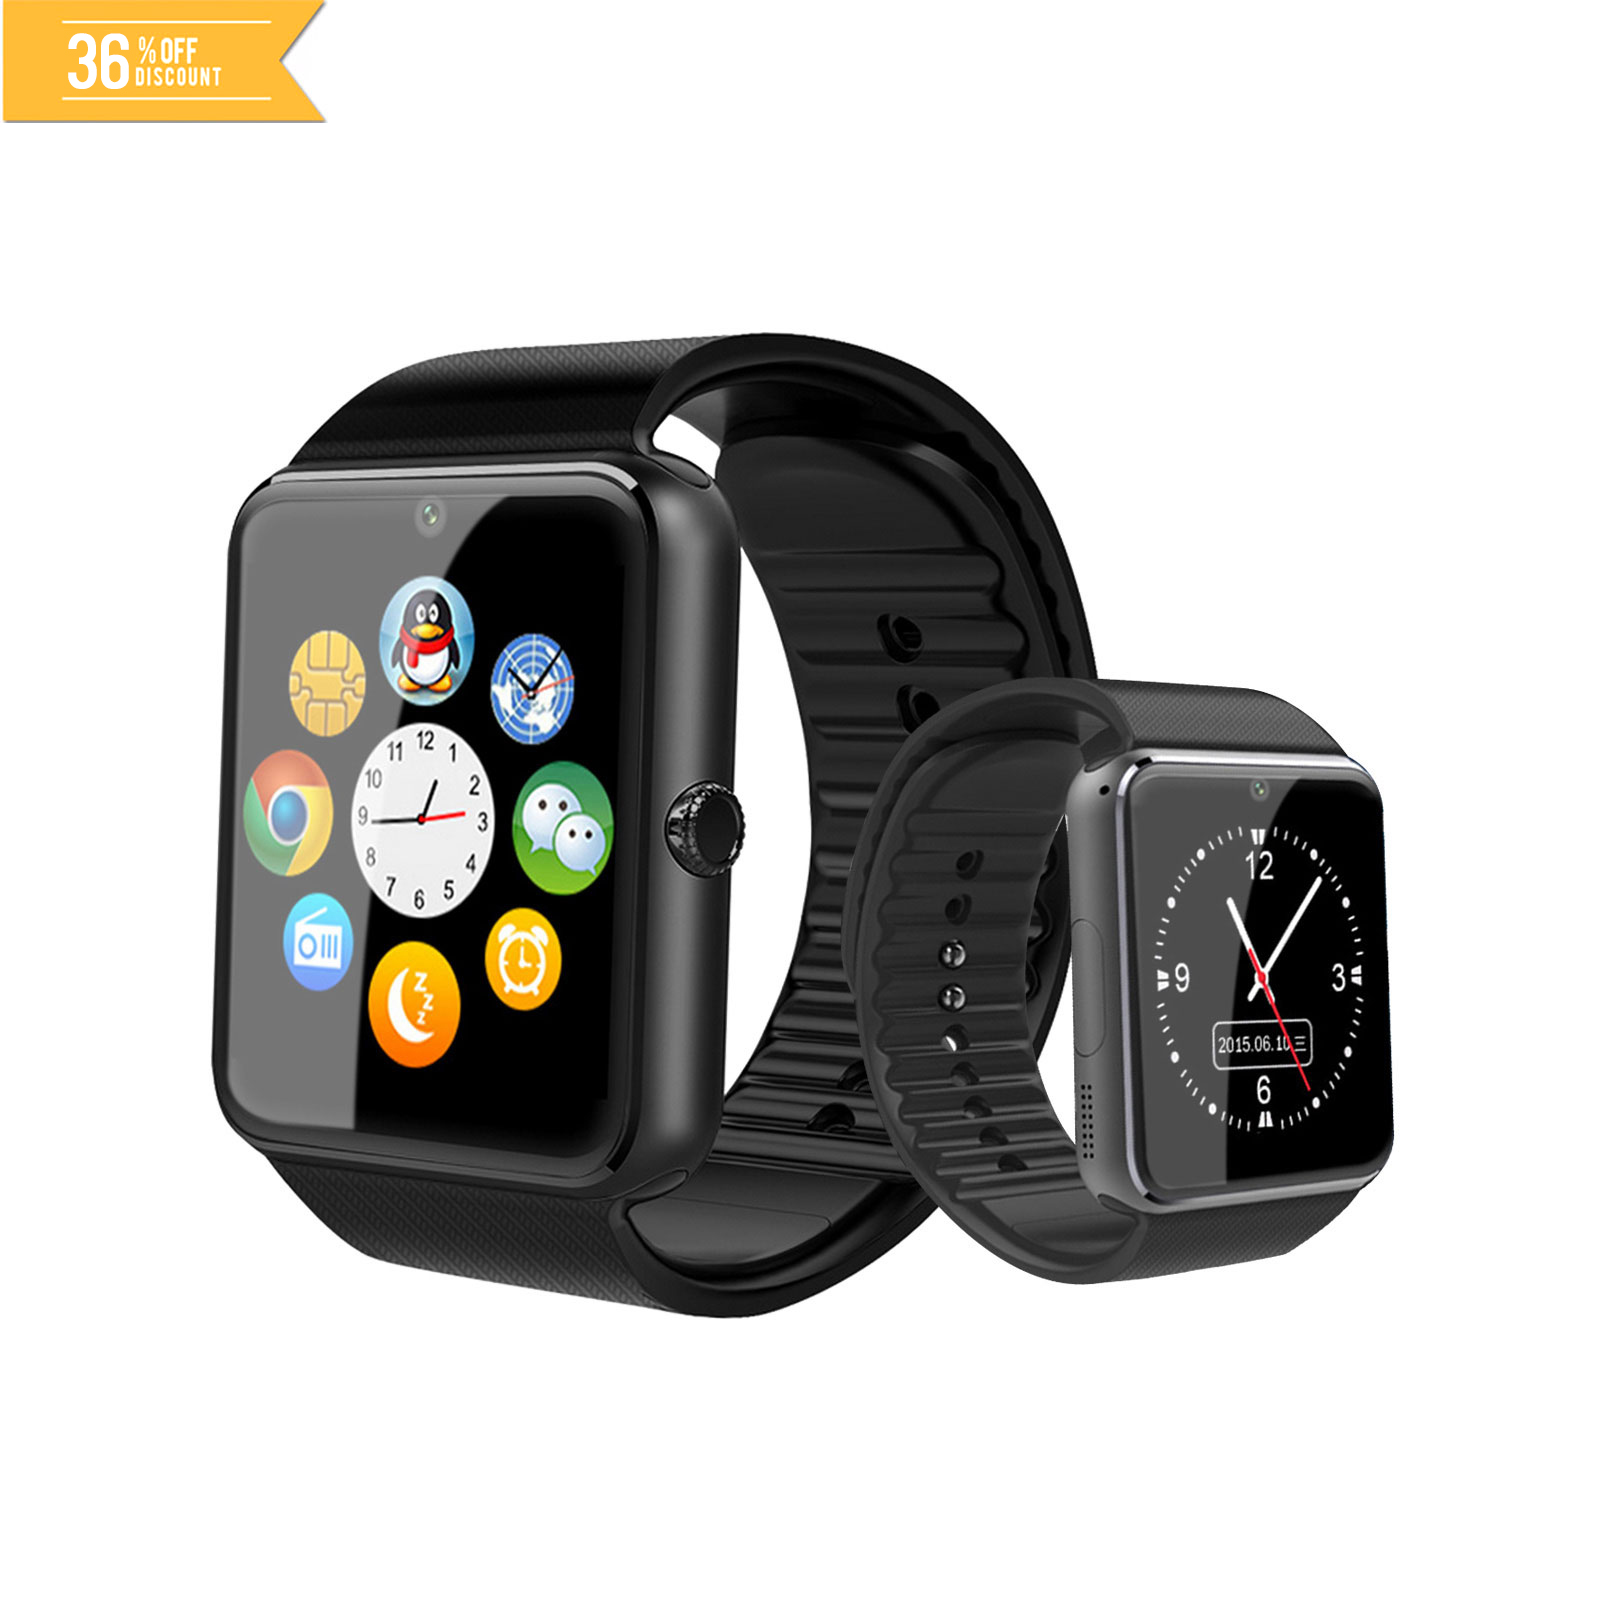 GT08 Bluetooth Smart Watch NFC Phone Andriod IOS Touch Screen Support Sim Card TF Memory Card with Camera Smart Clock GT08 Watch